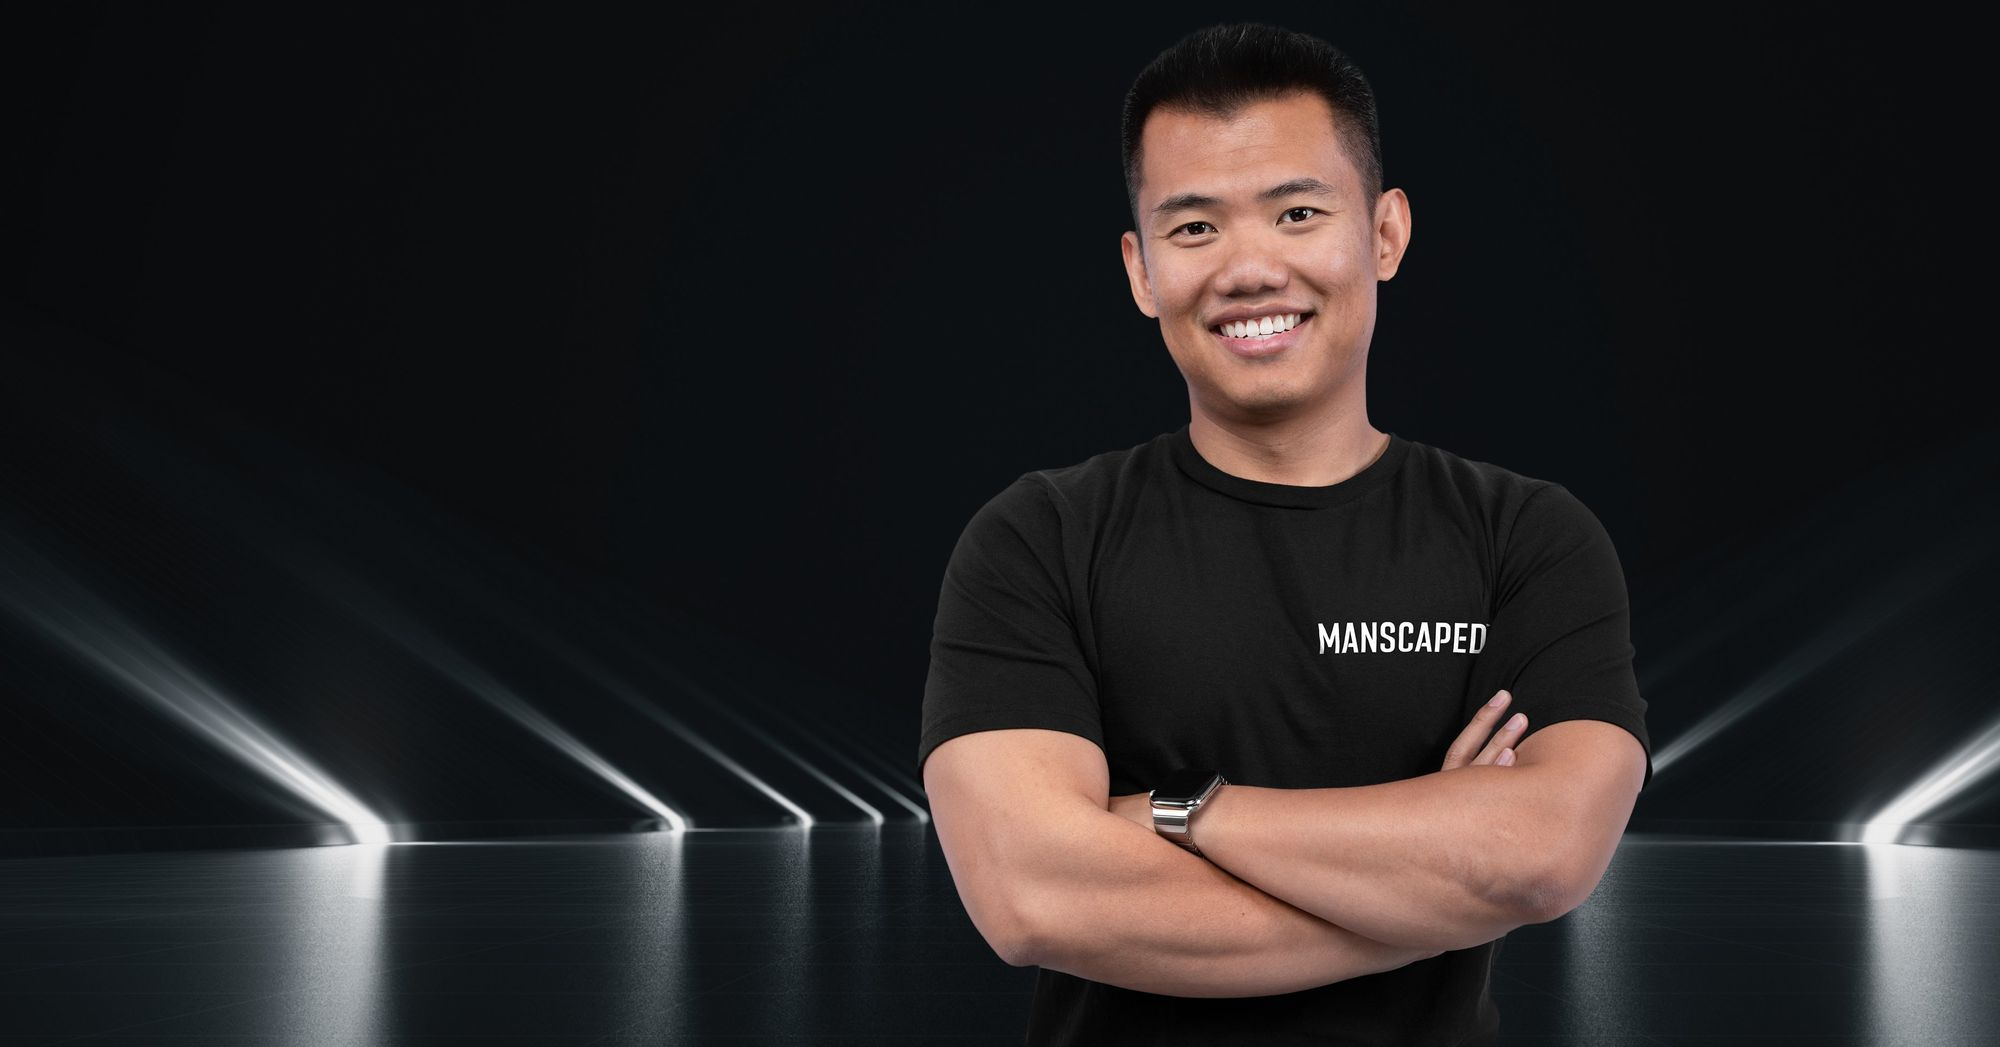 Founder and CEO of Manscaped Paul Tran